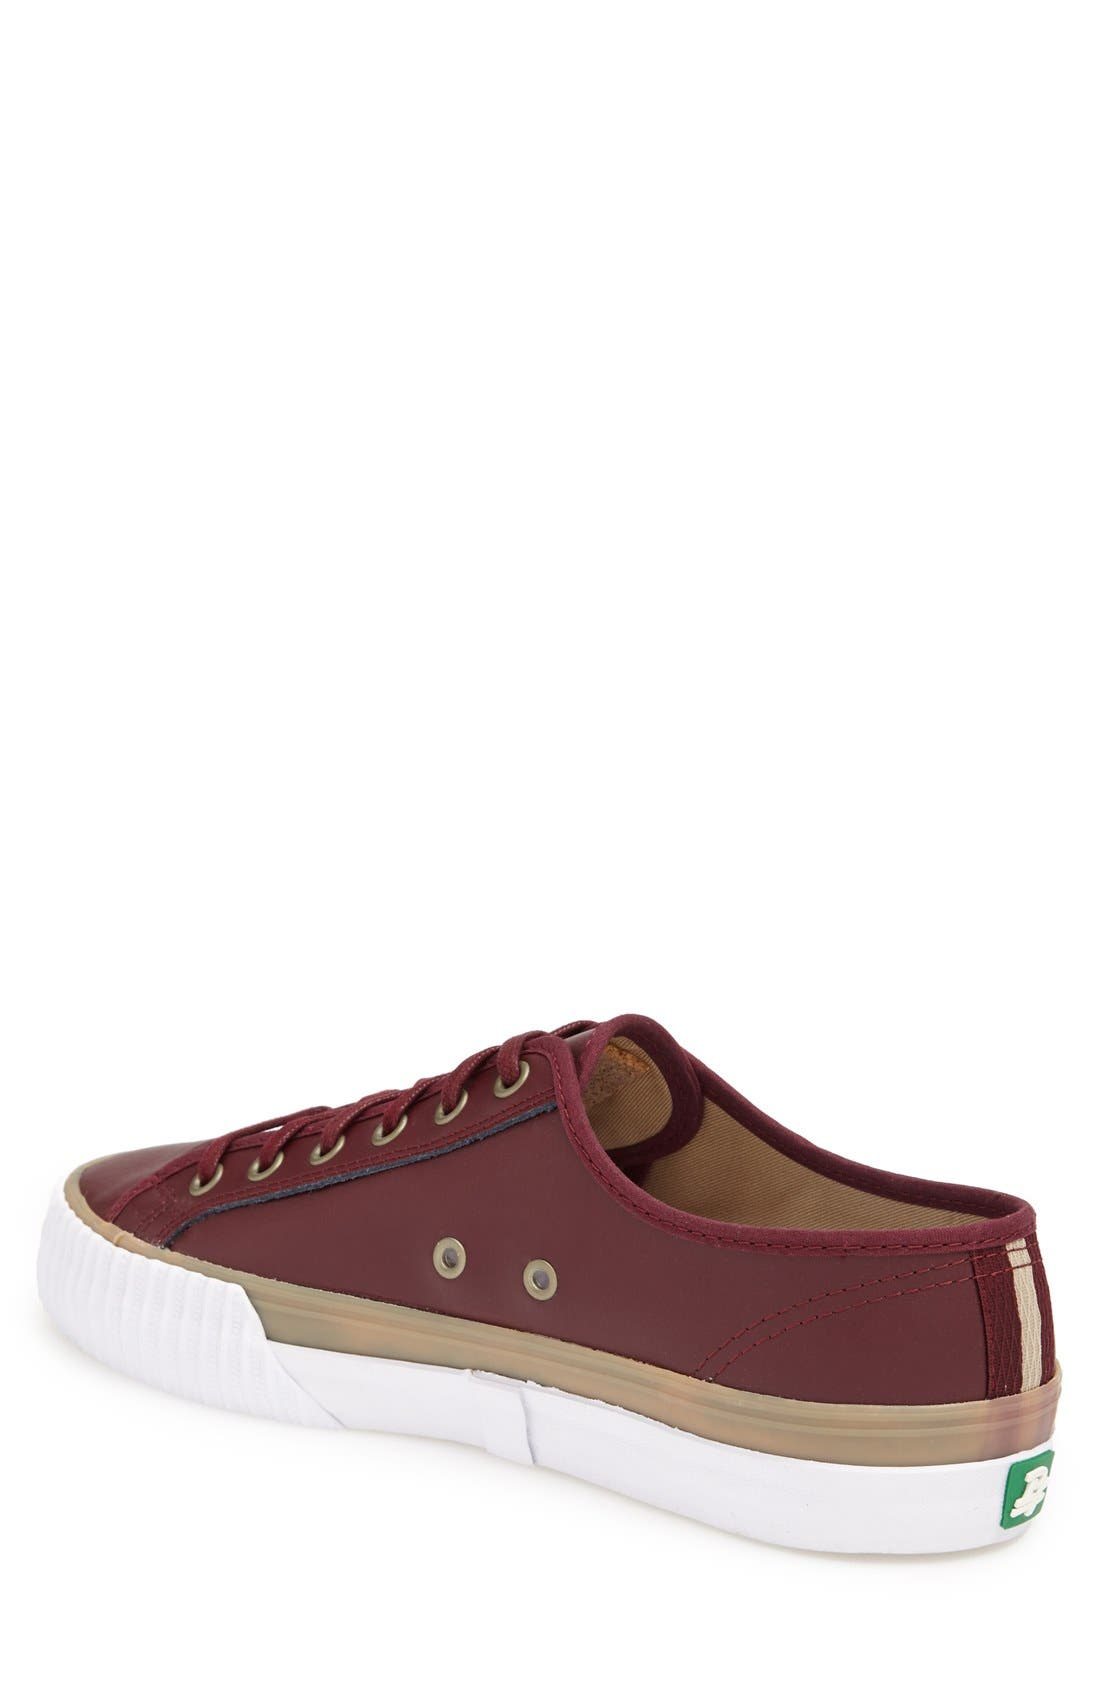 PF FLYERS,                             'Center Lo' Leather Sneaker,                             Alternate thumbnail 2, color,                             932